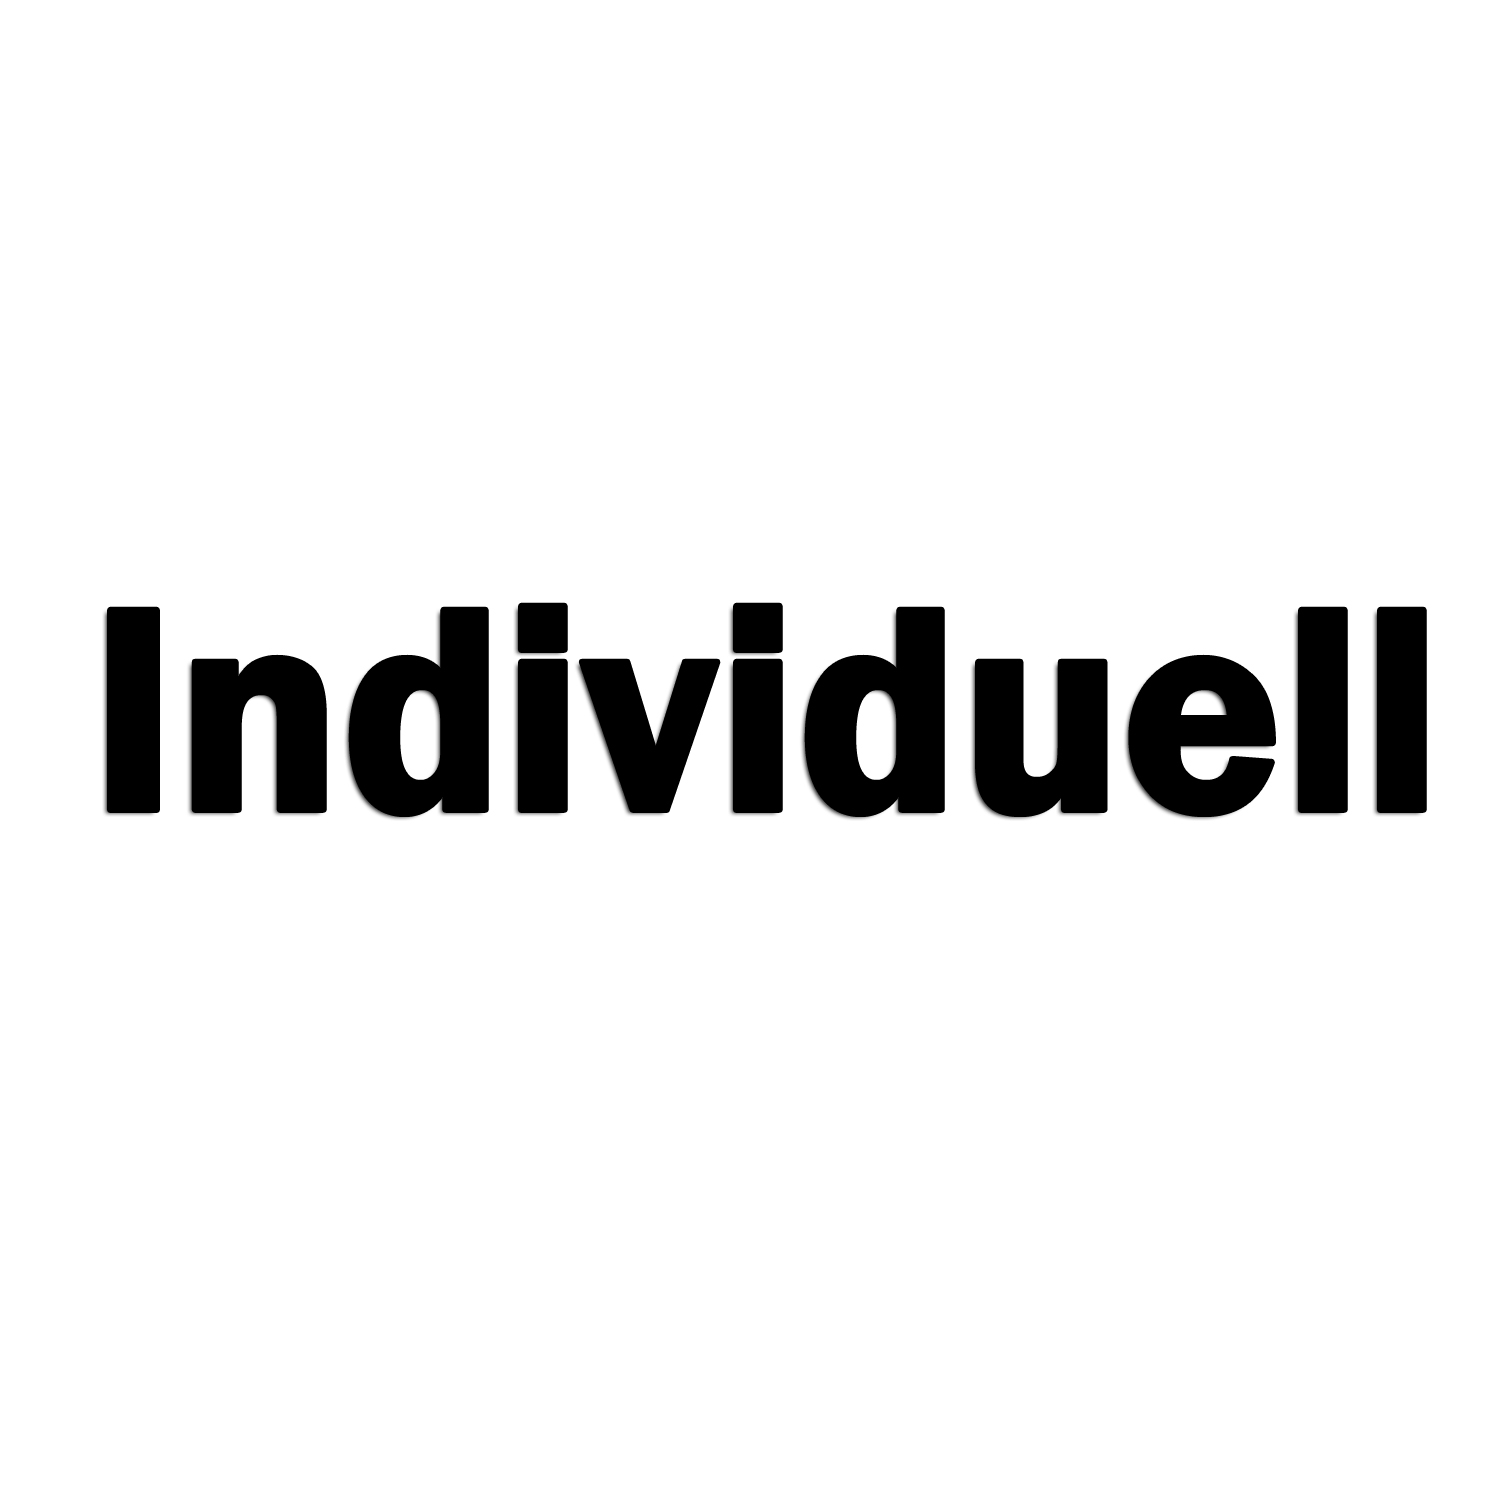 individuell5a1445ac7dab9